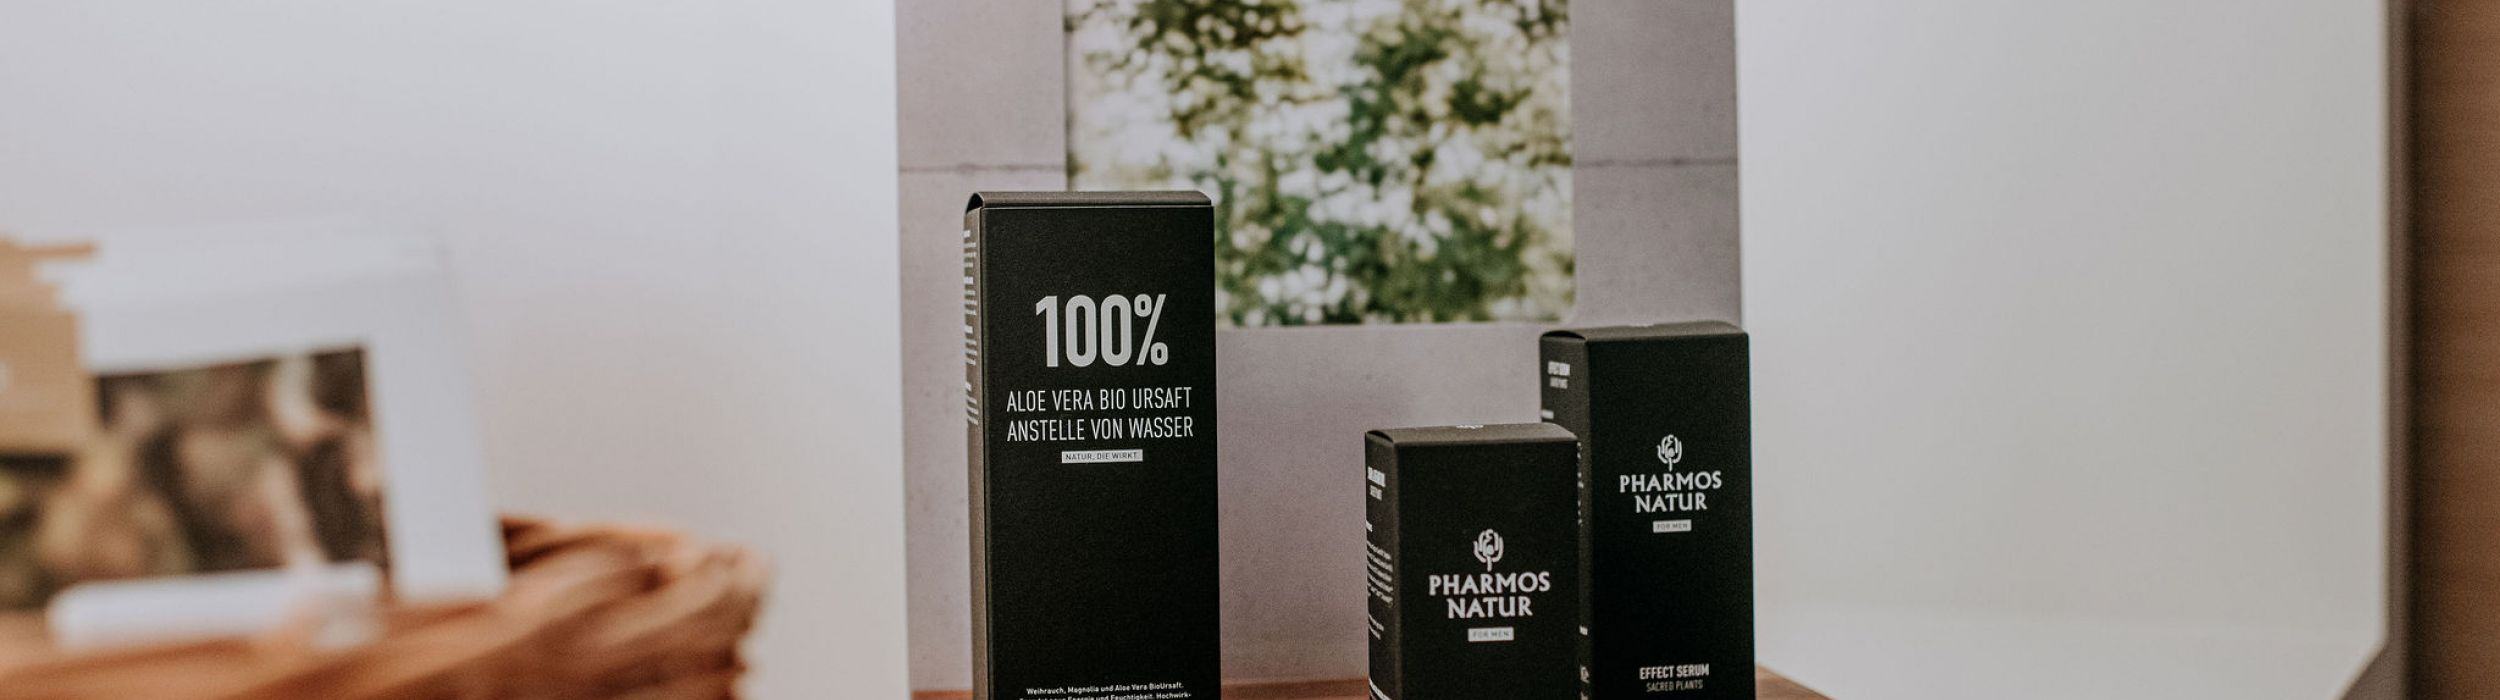 Beauty Products Pharmos Men